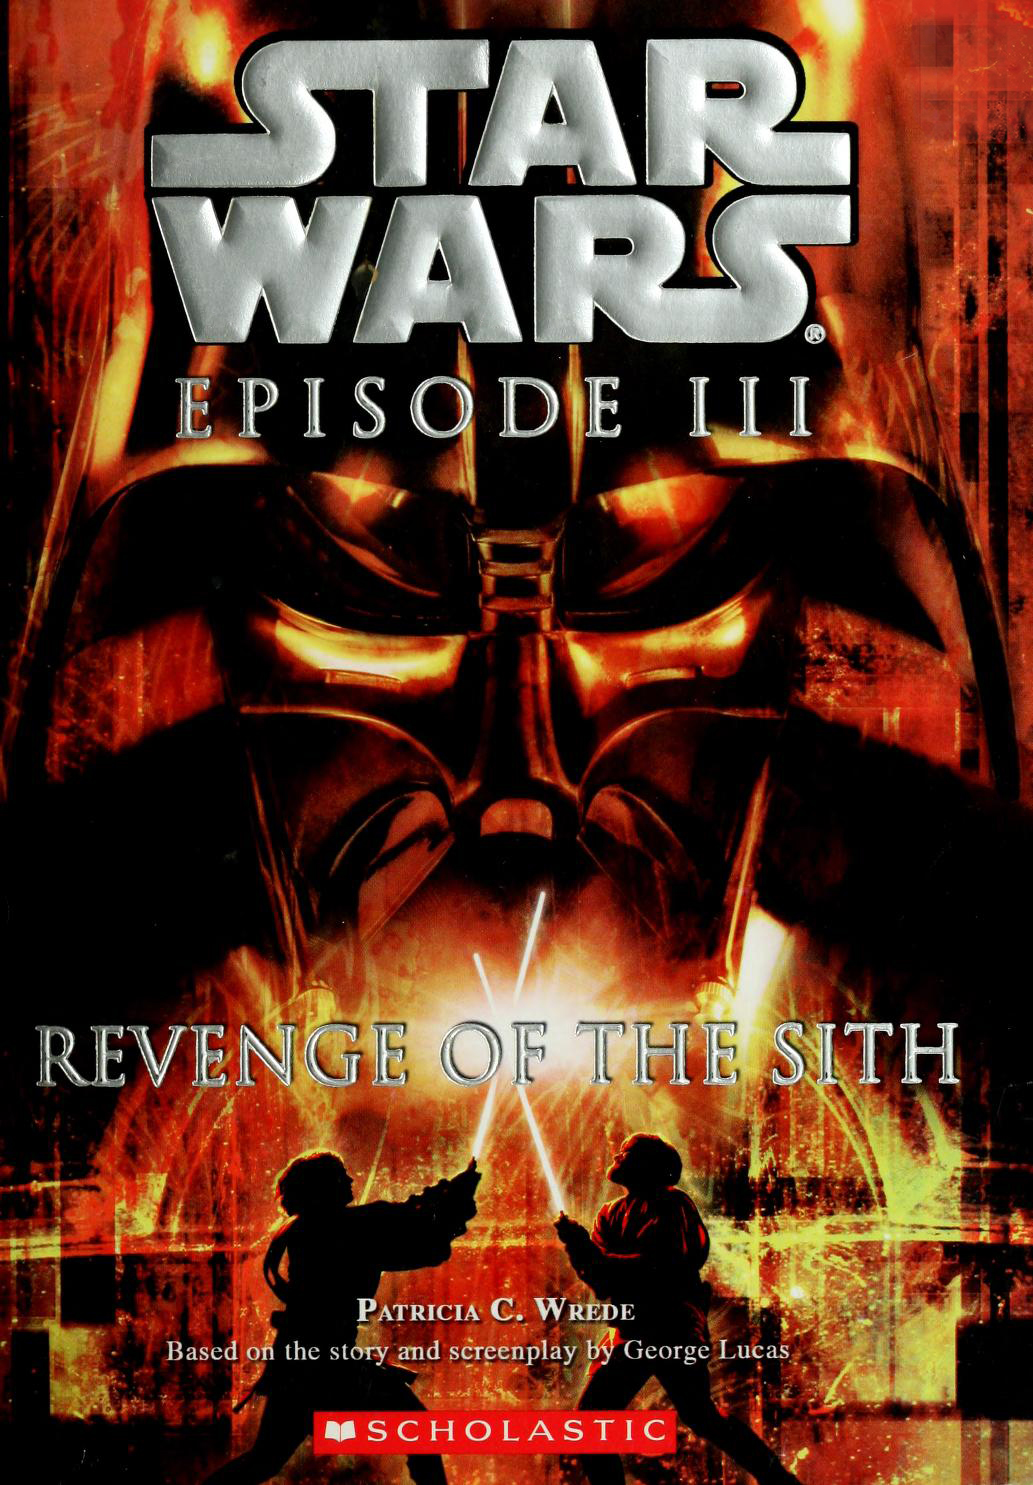 The Art of Star Wars, Episode III - Revenge of the Sith ...